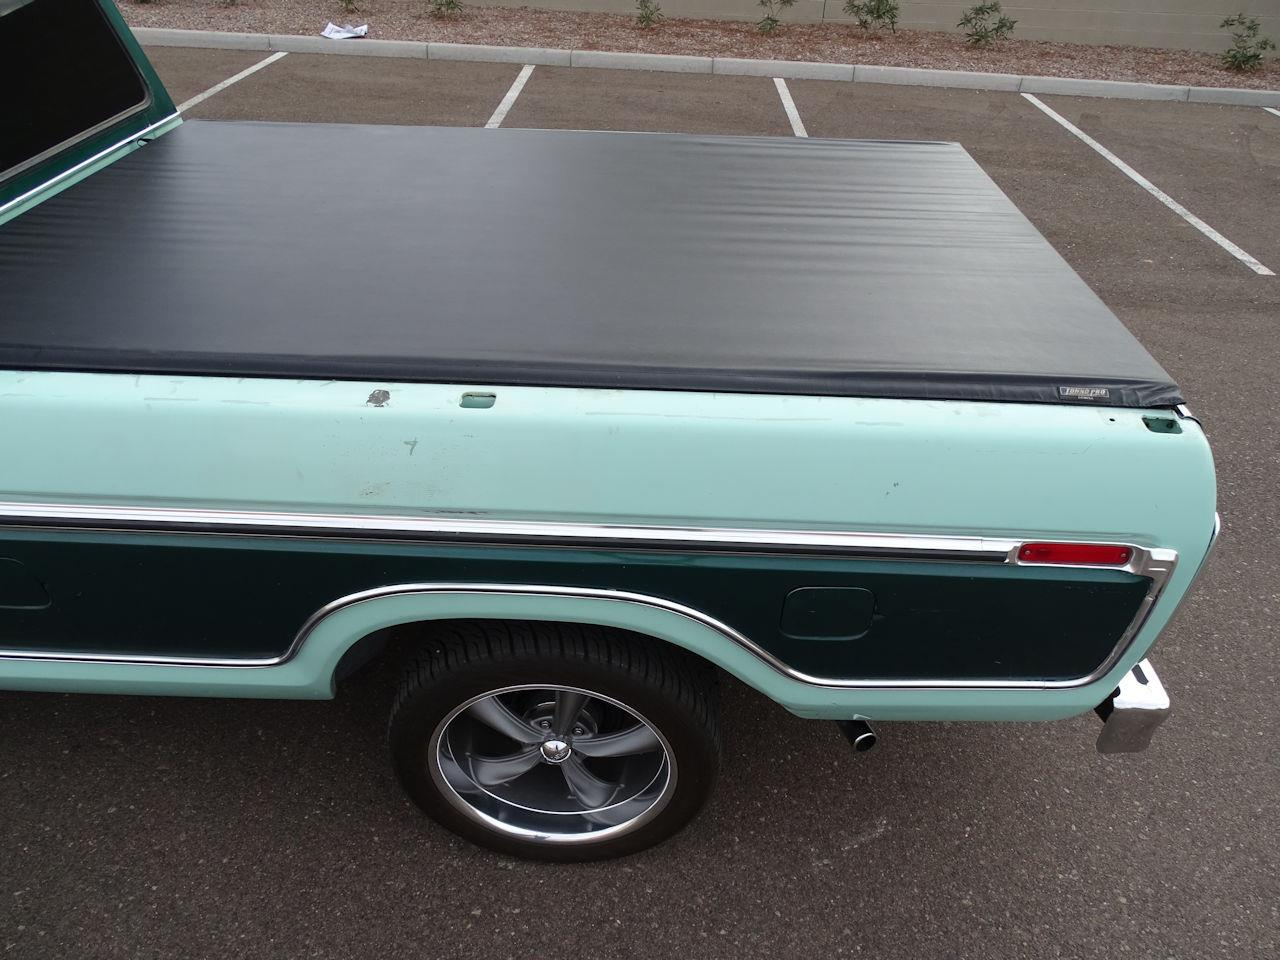 Large Picture of '78 Ford F150 located in Arizona - $17,995.00 Offered by Gateway Classic Cars - Scottsdale - MEMV